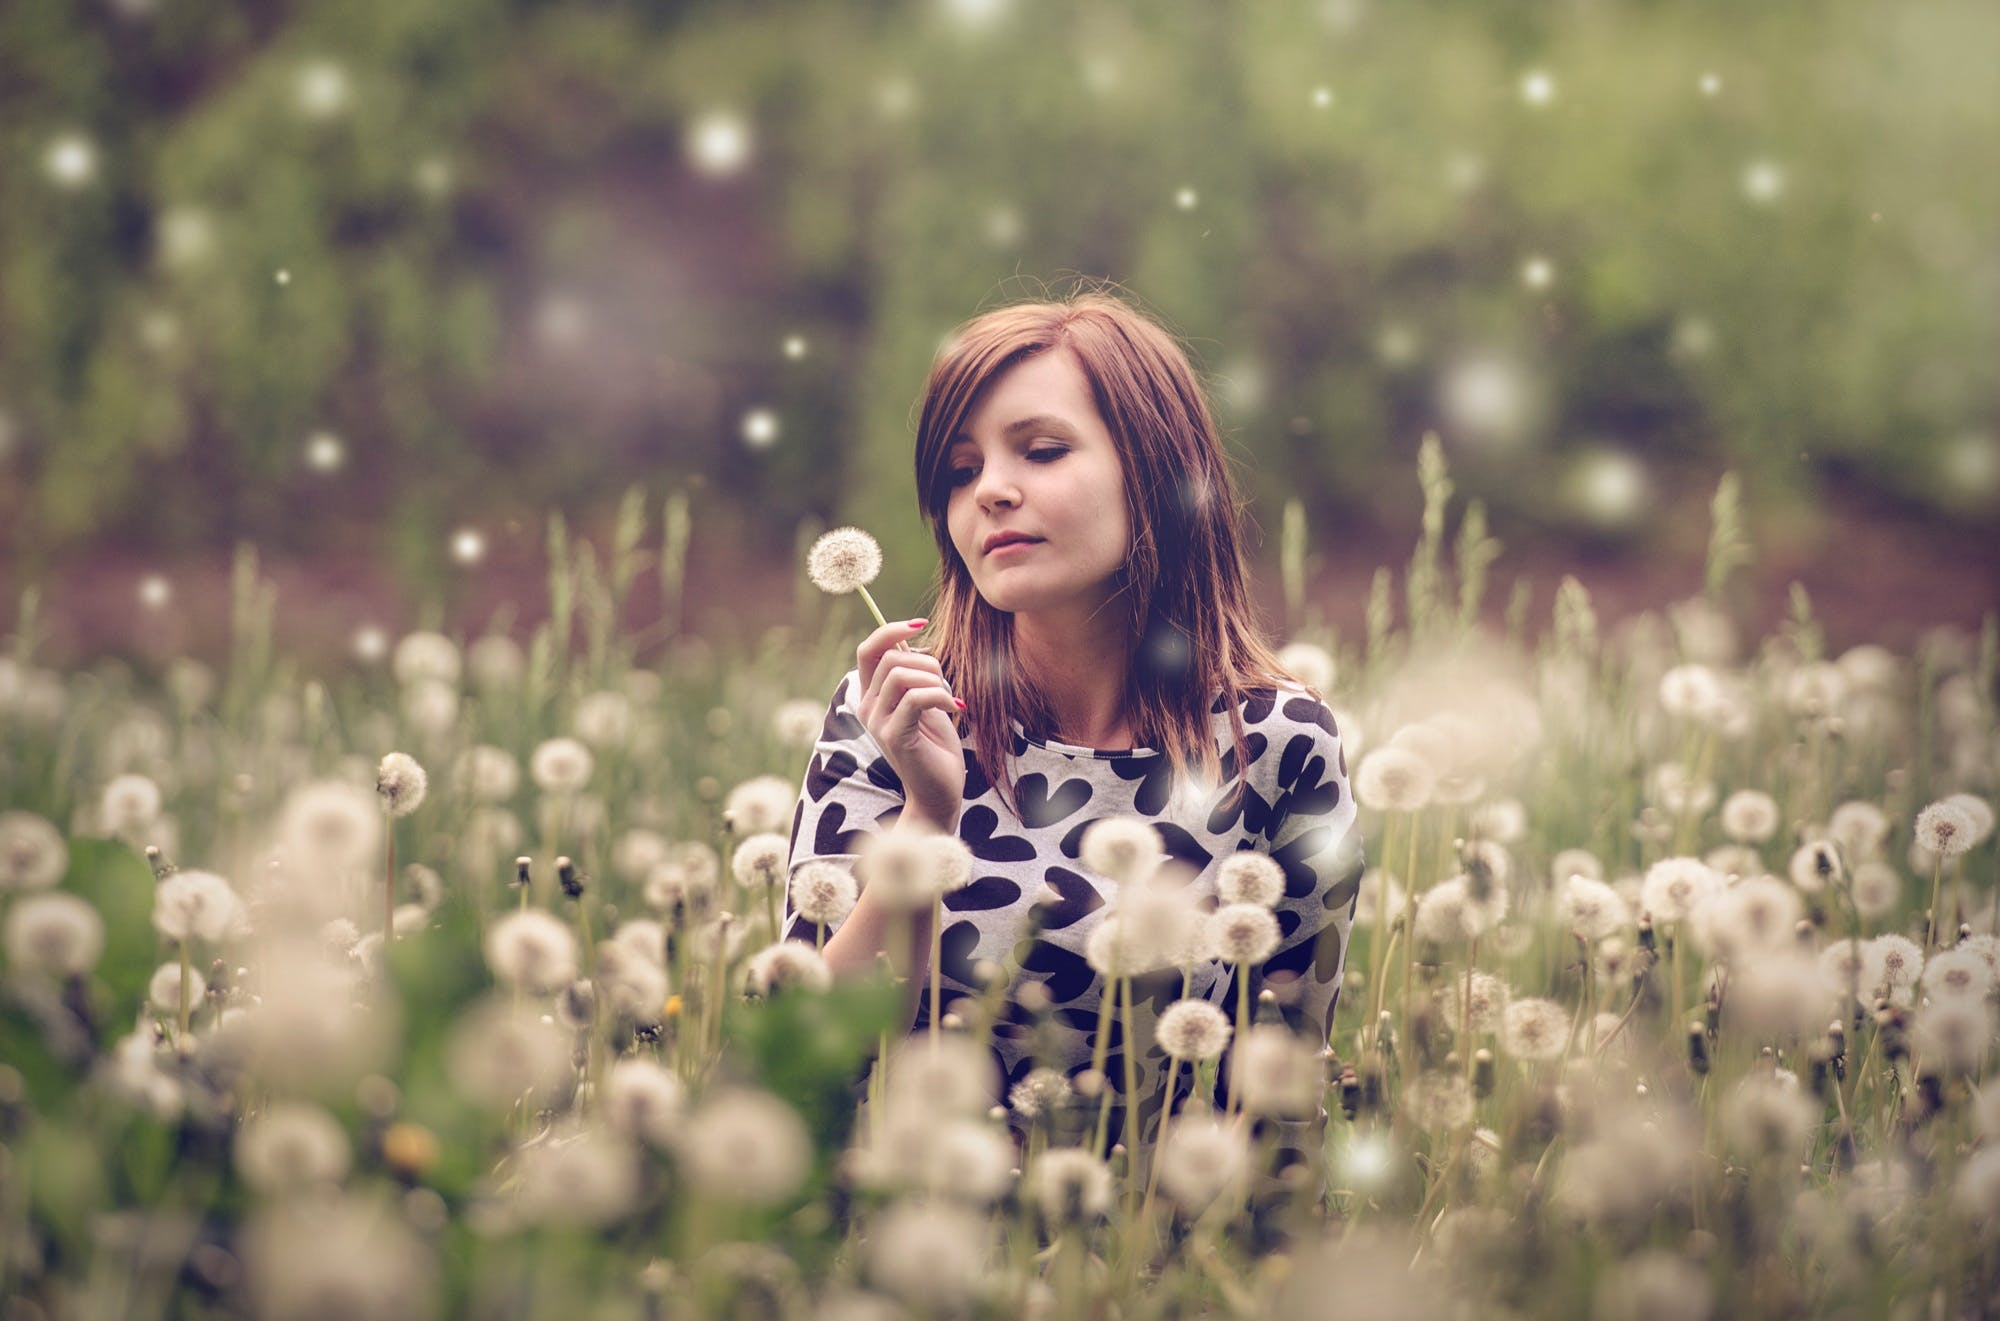 Woman Sitting in a Field of Flowers